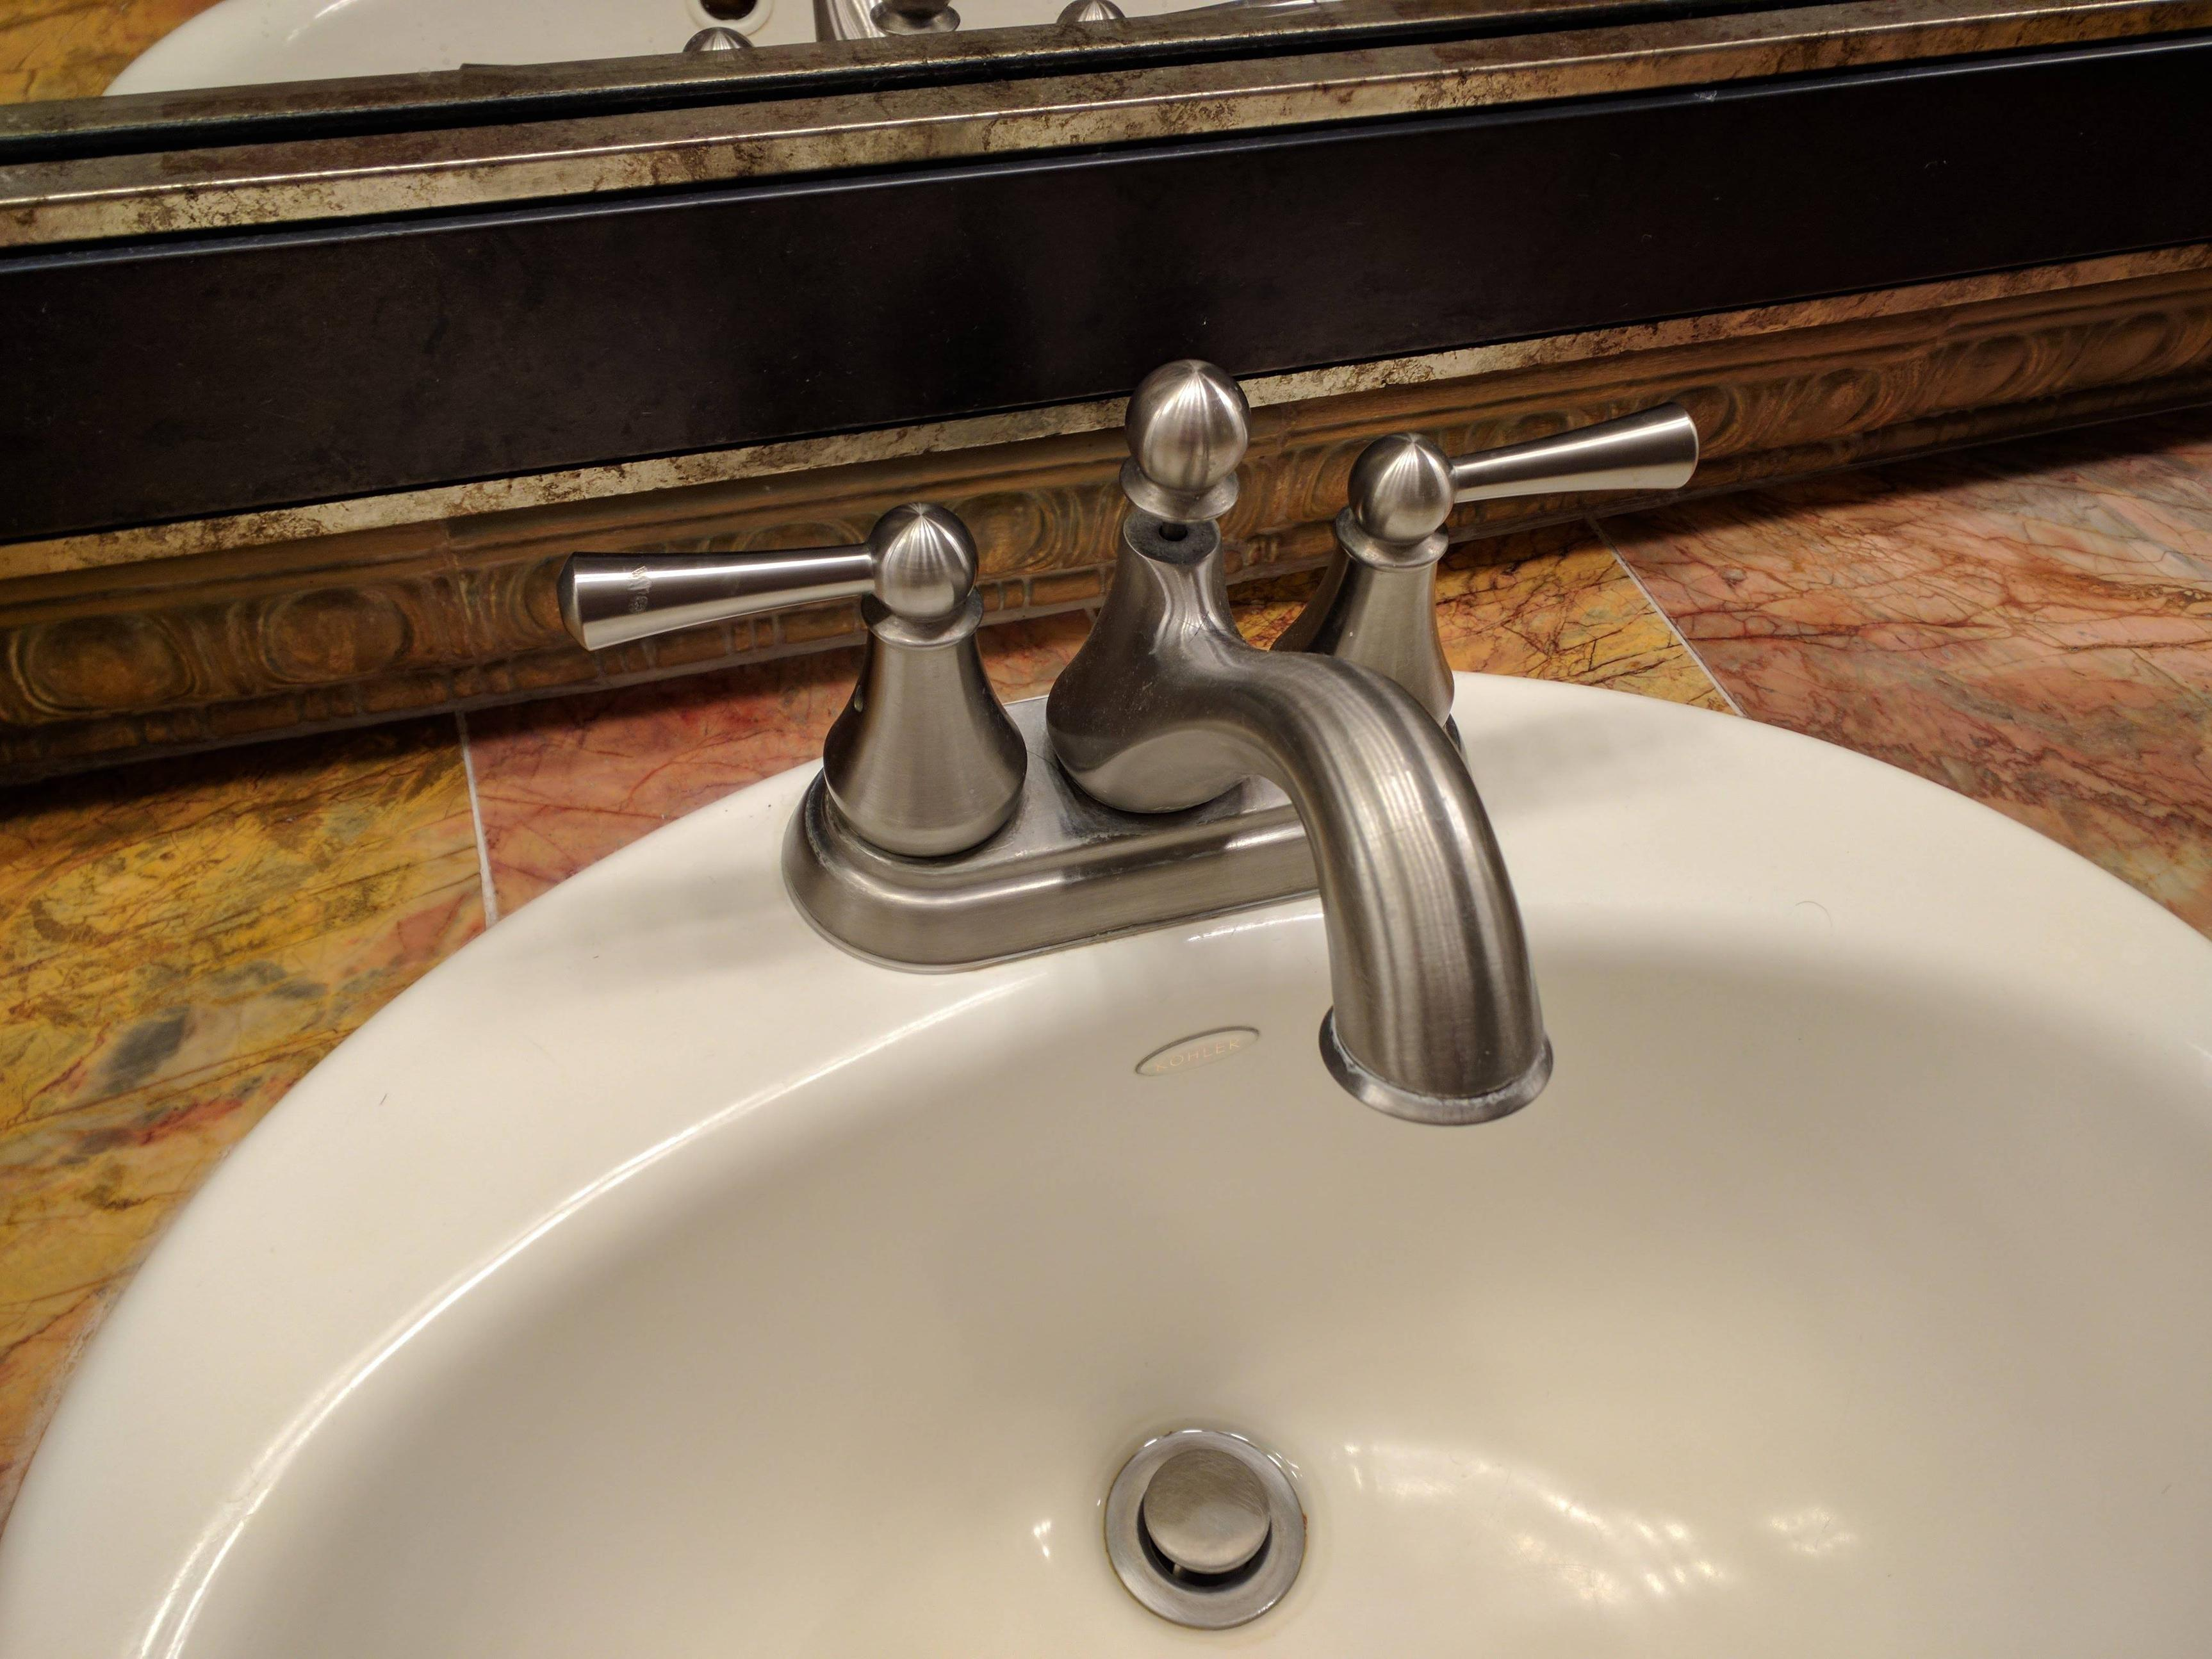 replace this recessed faucet aerator